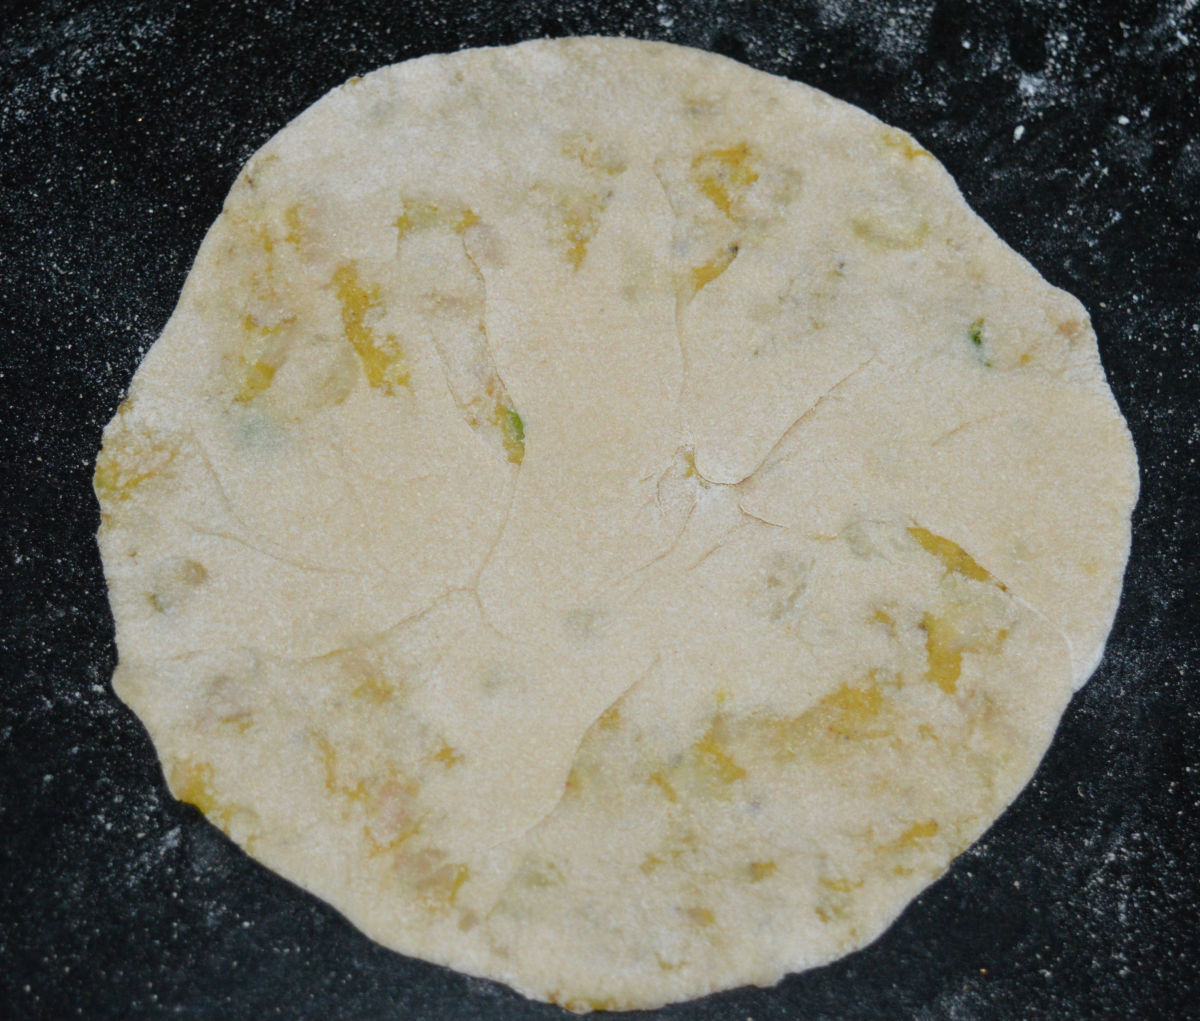 Step five: Place a portion of the stuffing in the center. Bring the edges of the disc together and close the open ends. Press it a little. Dust it with wheat flour and roll it to make a disc of about 7-8 inch diameter.